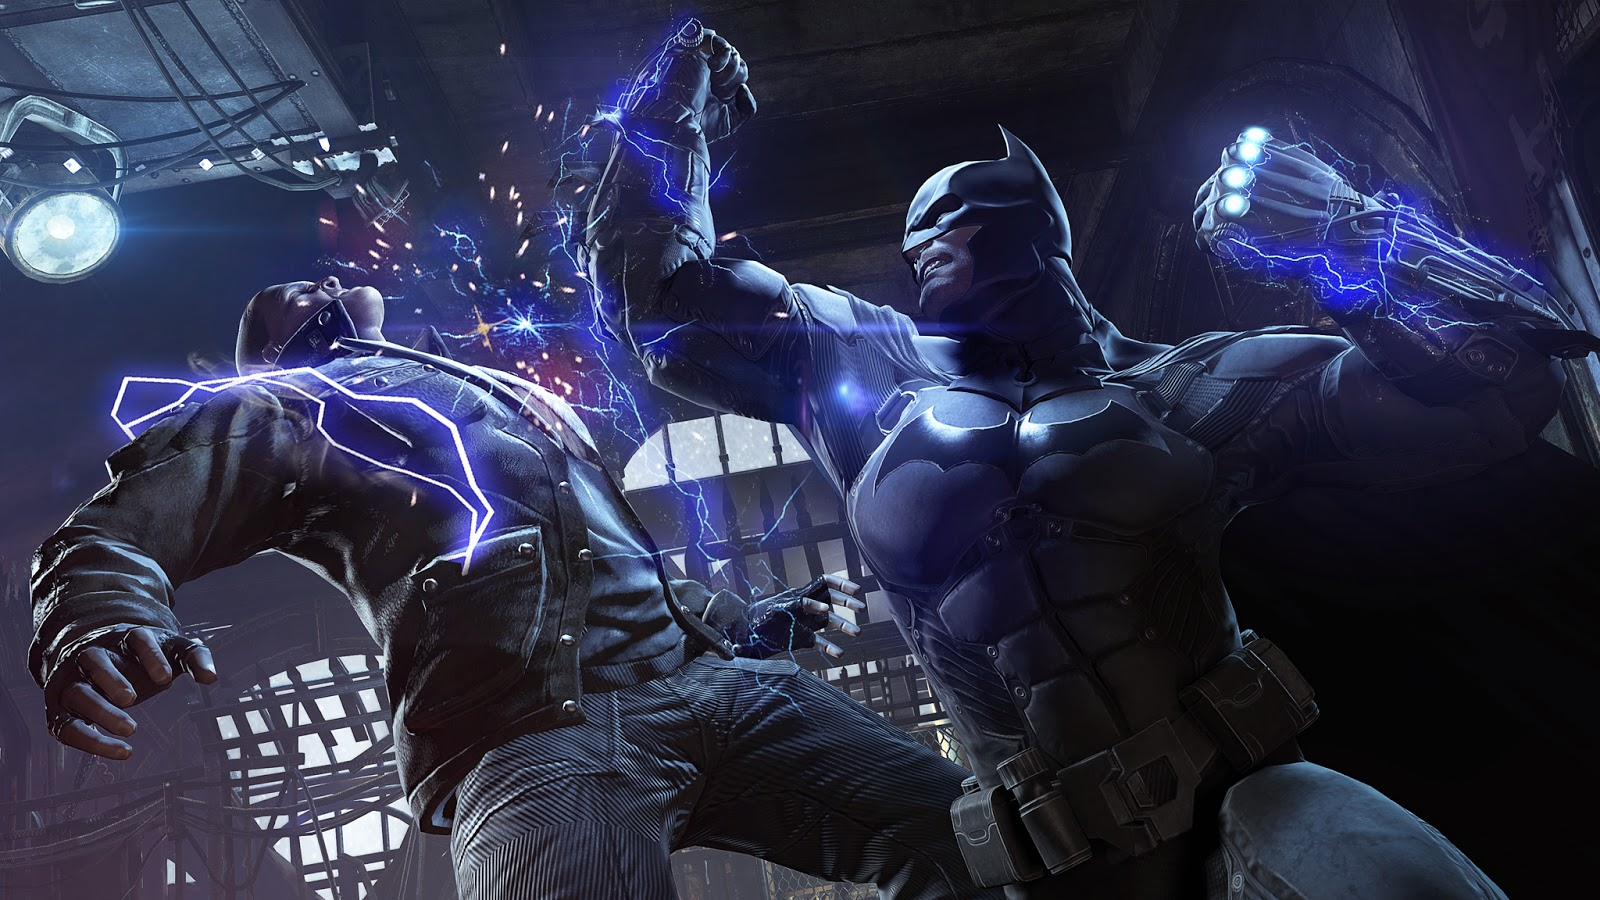 Batman Arkham Origins Video Game Wallpapers  - batman arkham origins game wallpapers